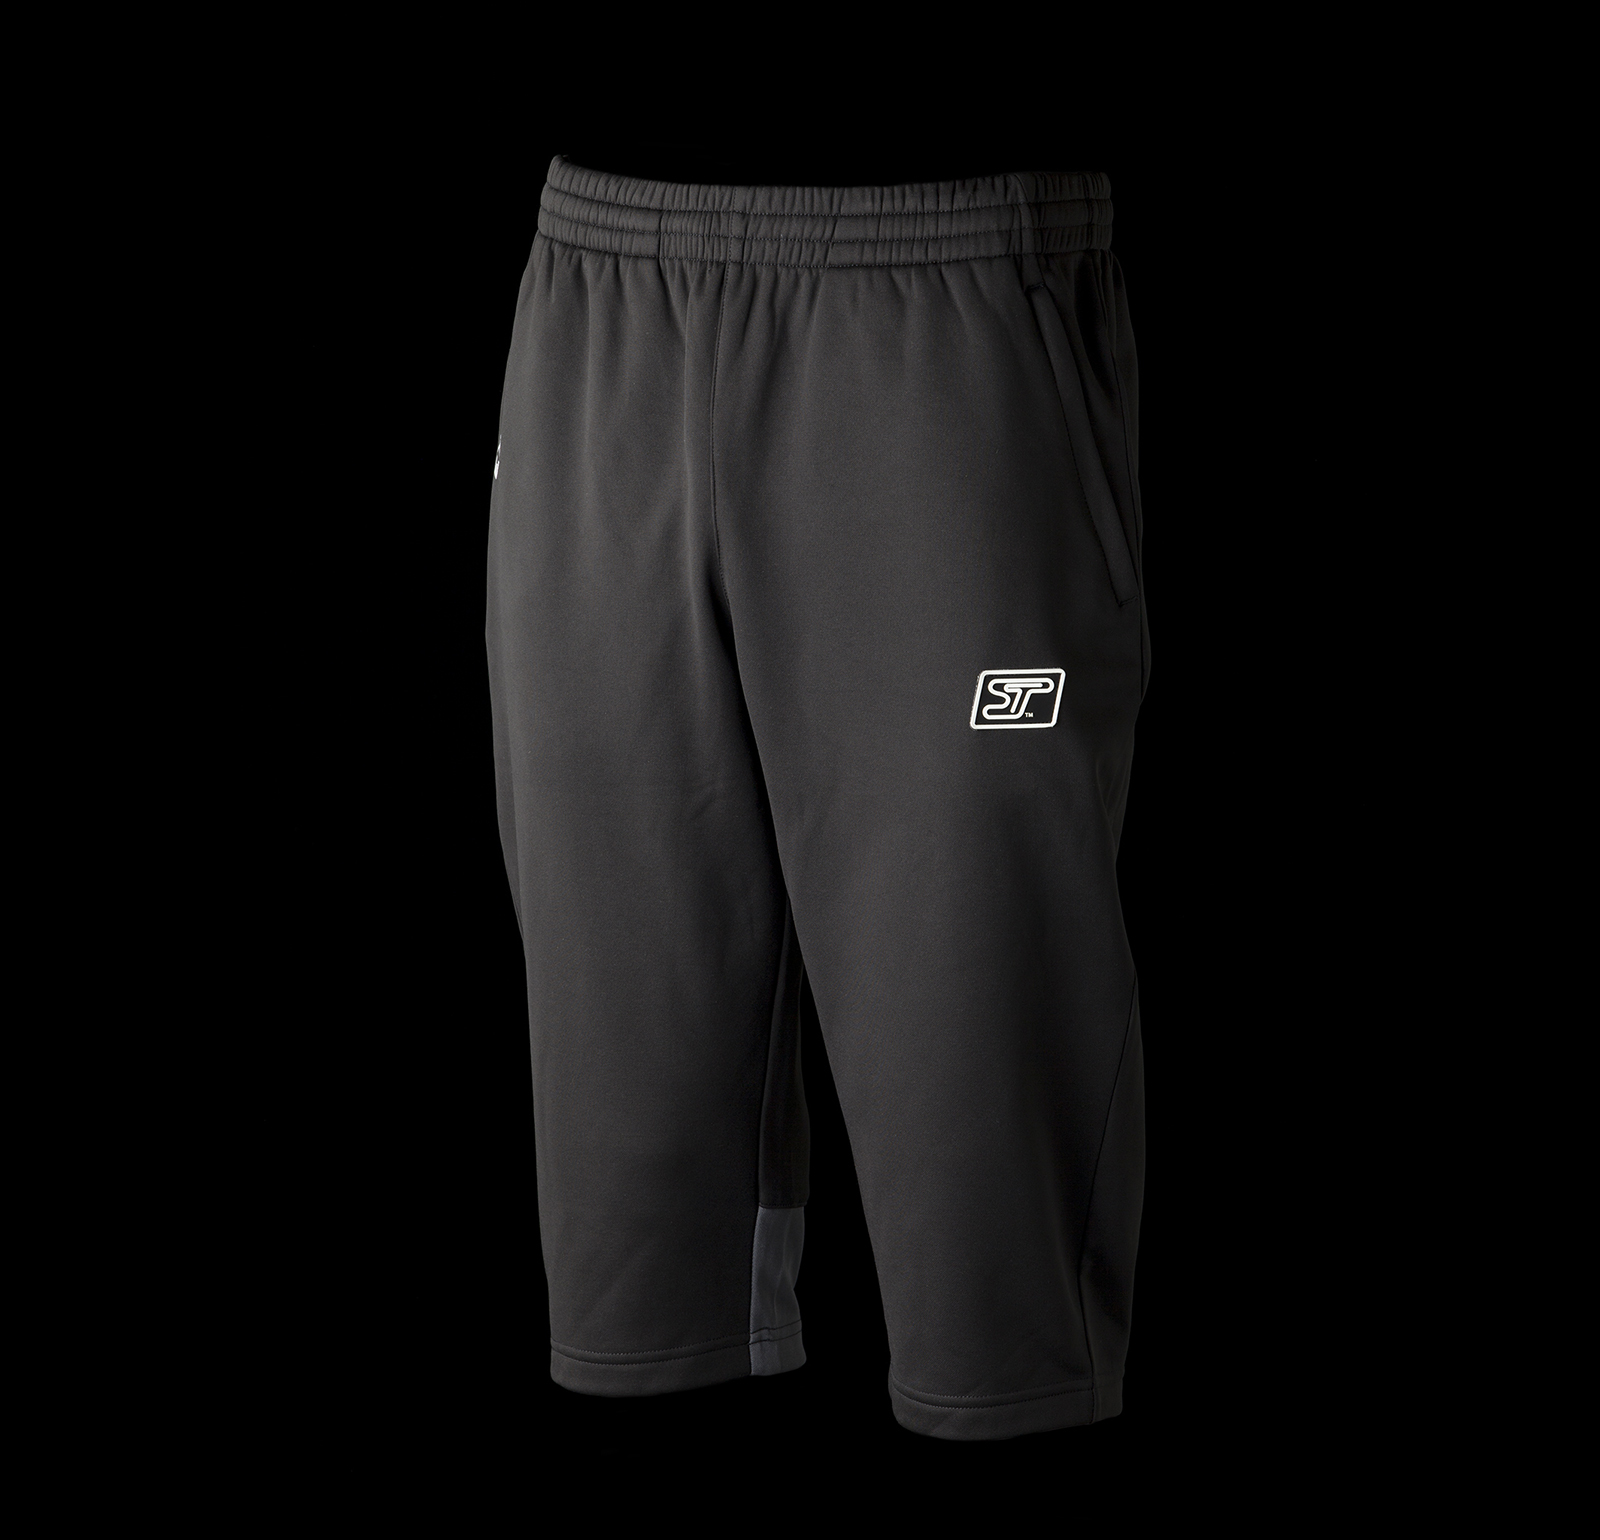 excel-3-4-pant-promo-07